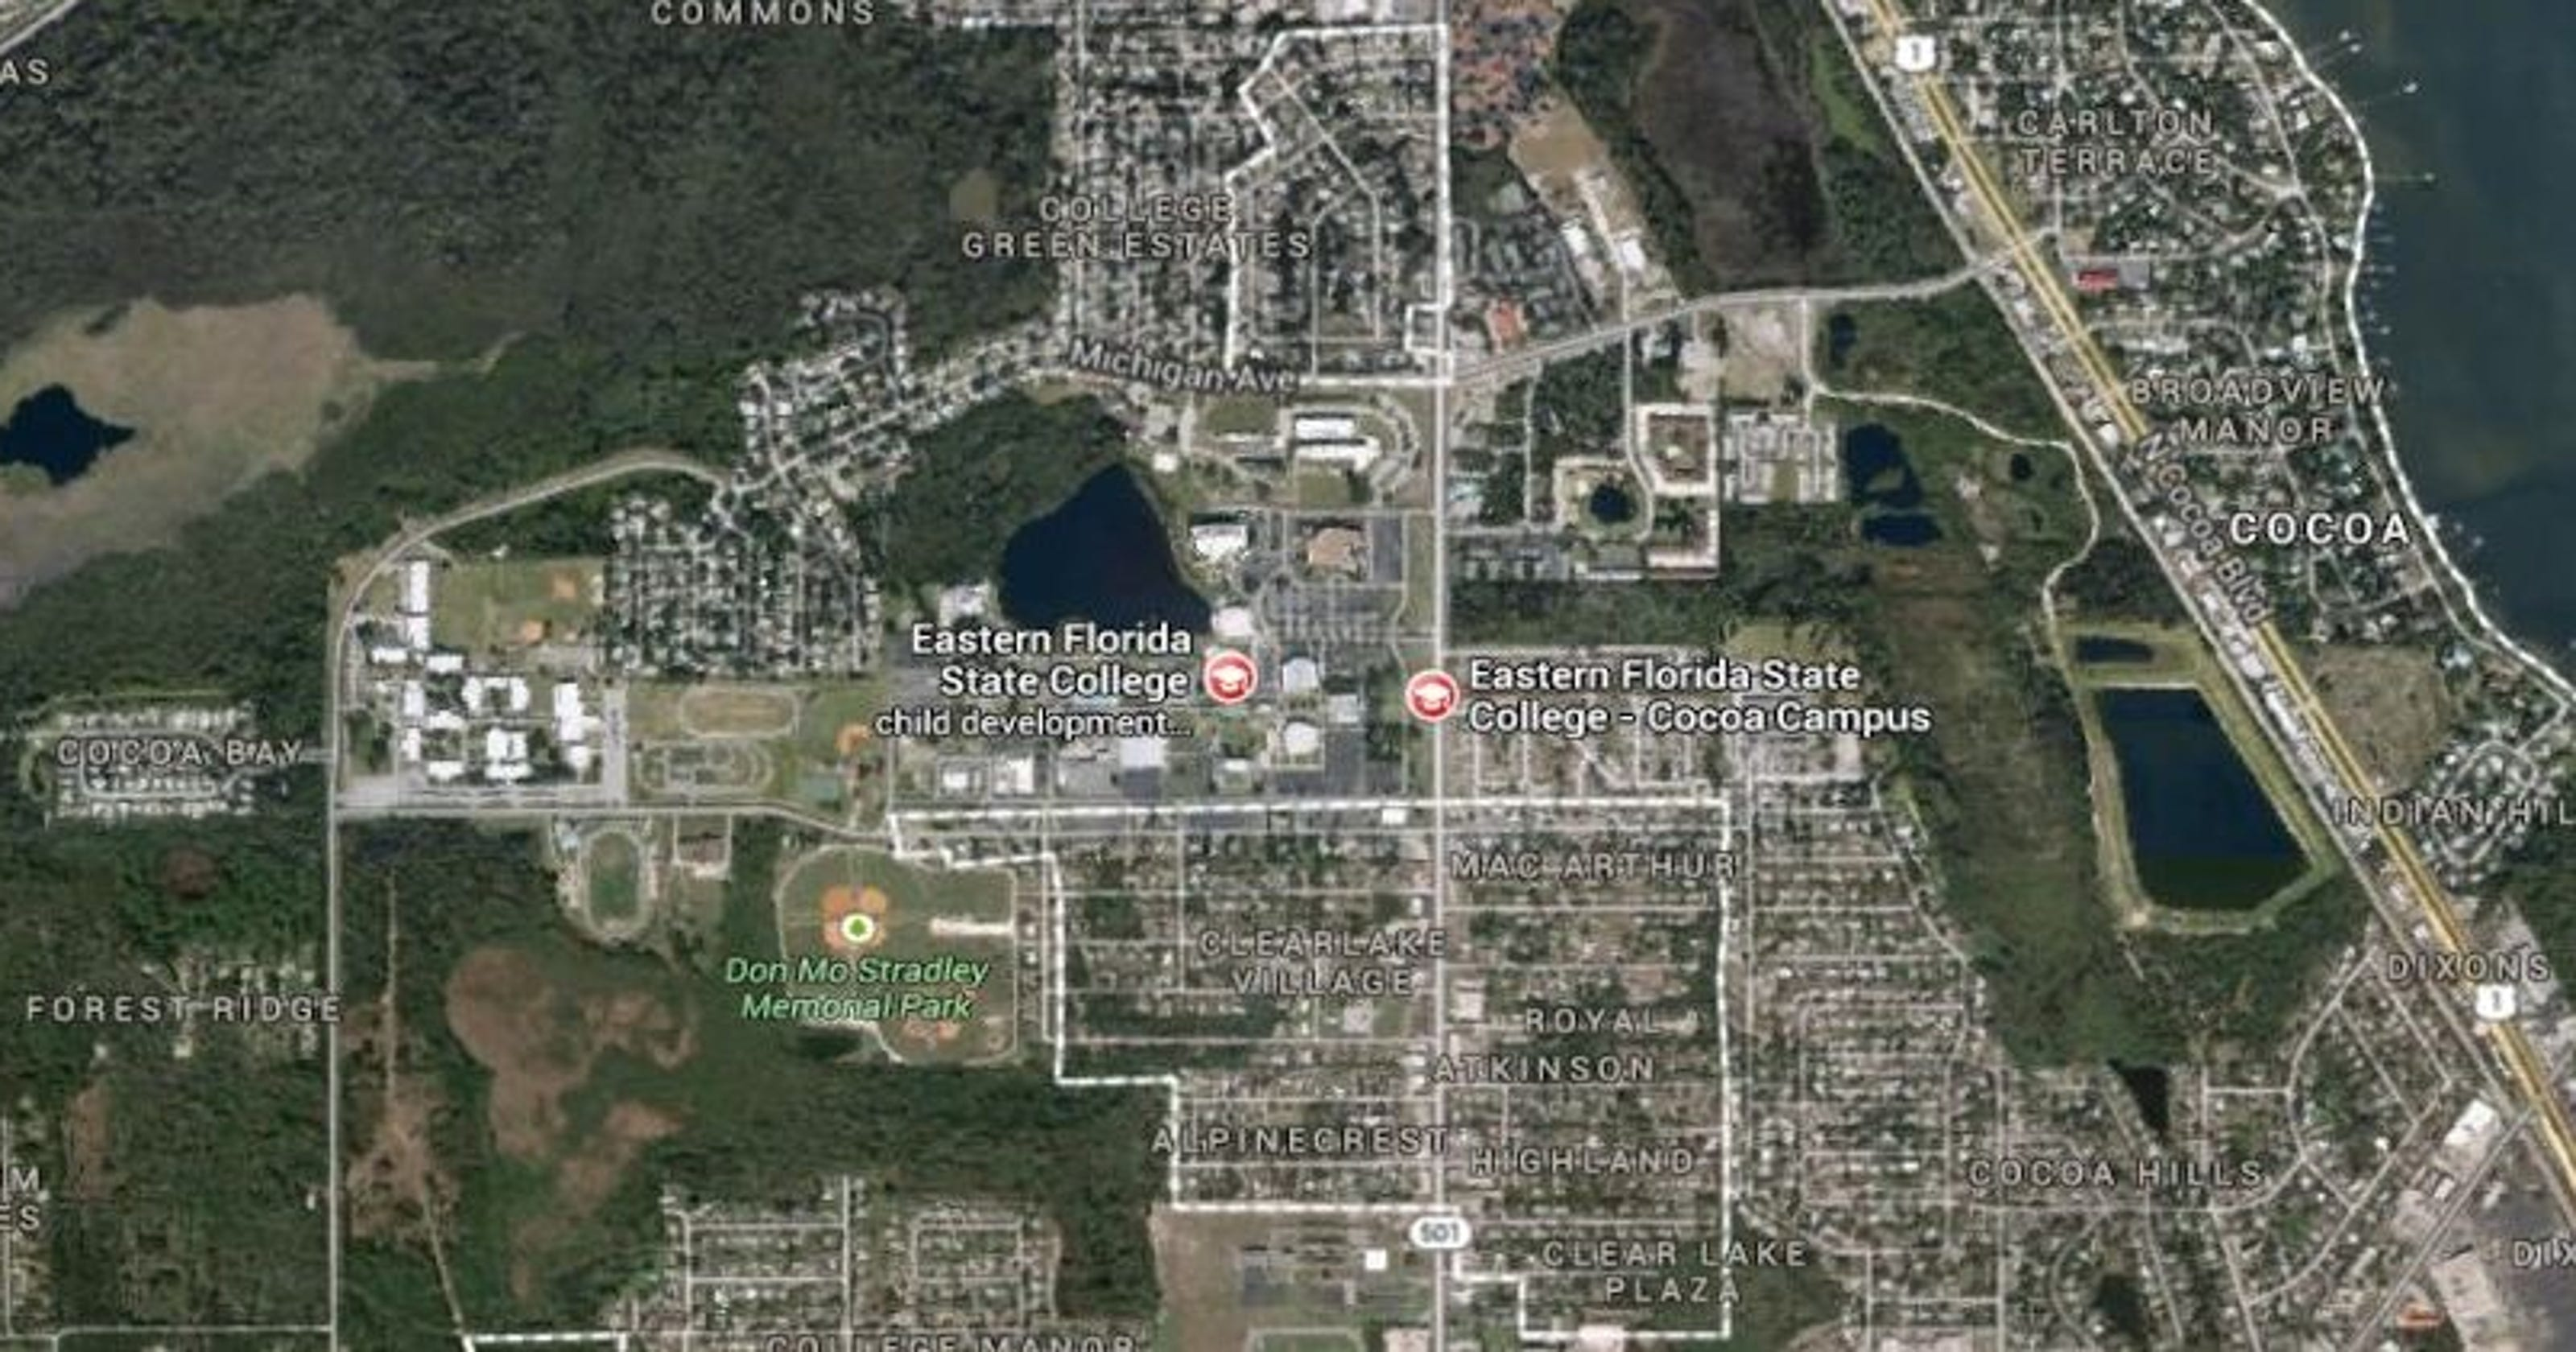 Building at EFSC Cocoa evacuated for possible gas leak on daytona state college campus map, tallahassee community college campus map, university of cincinnati campus map, florida state college campus map, brevard campus map, bcc campus map,